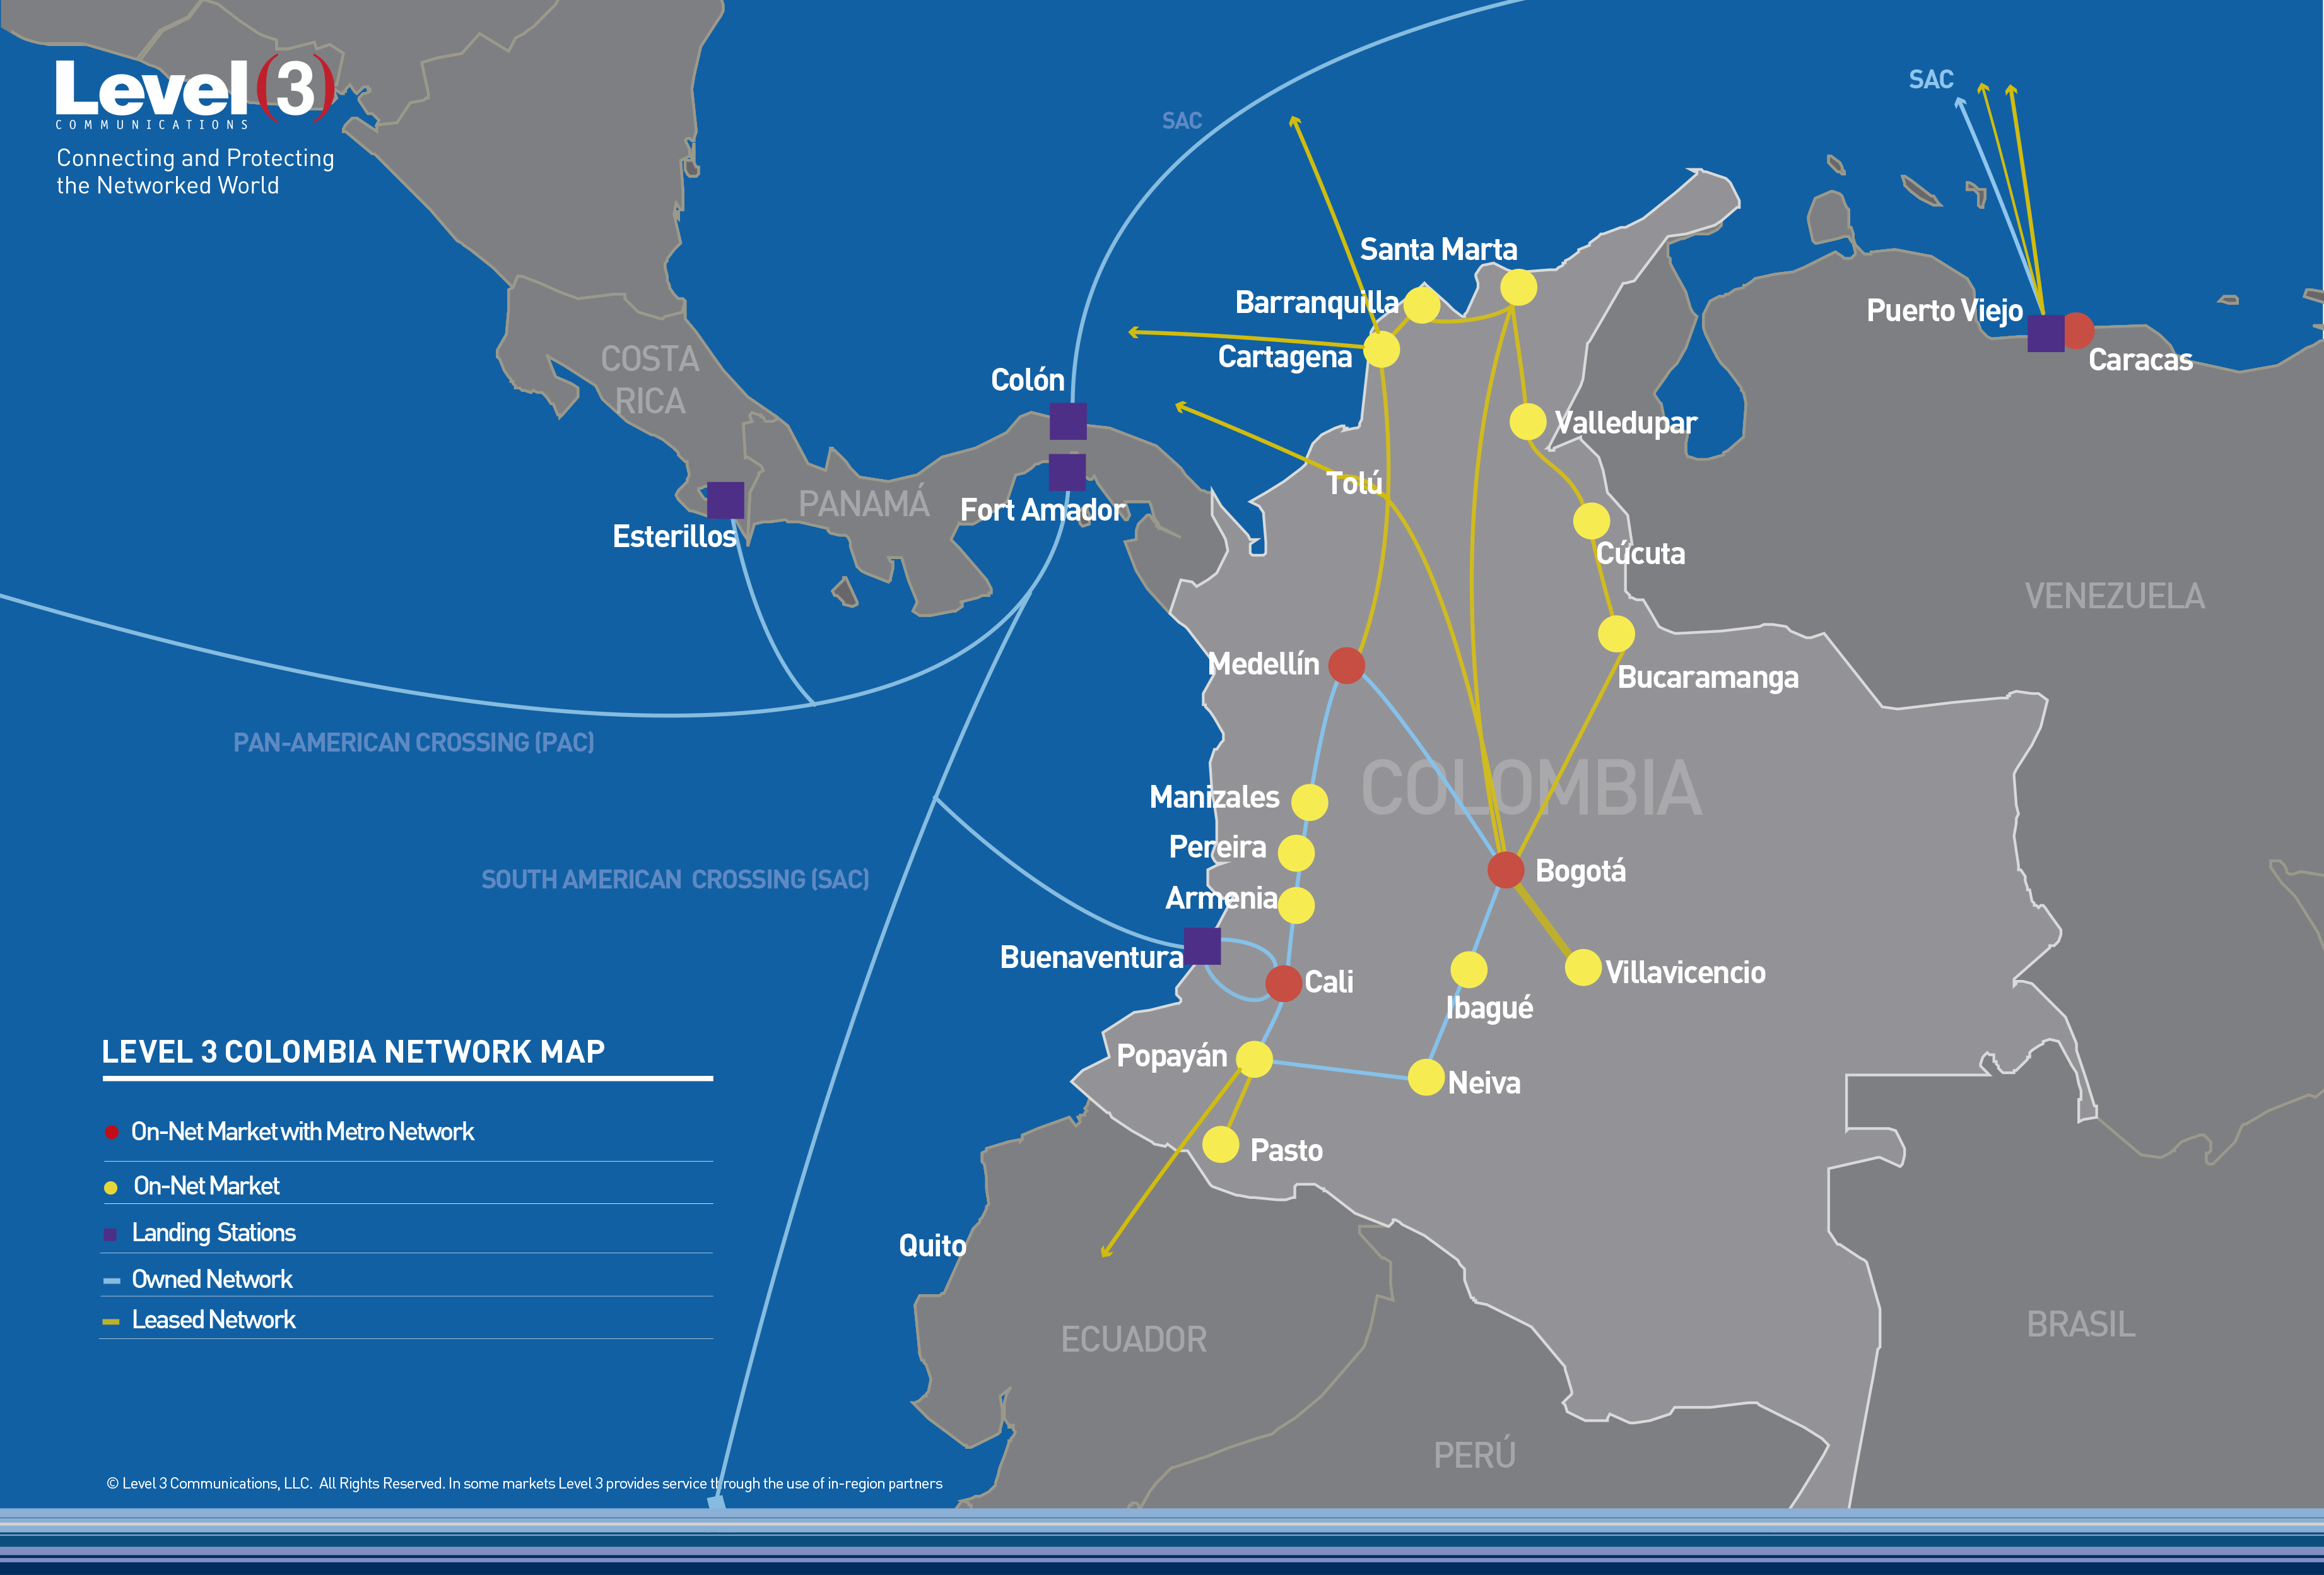 level 3 colombia network map